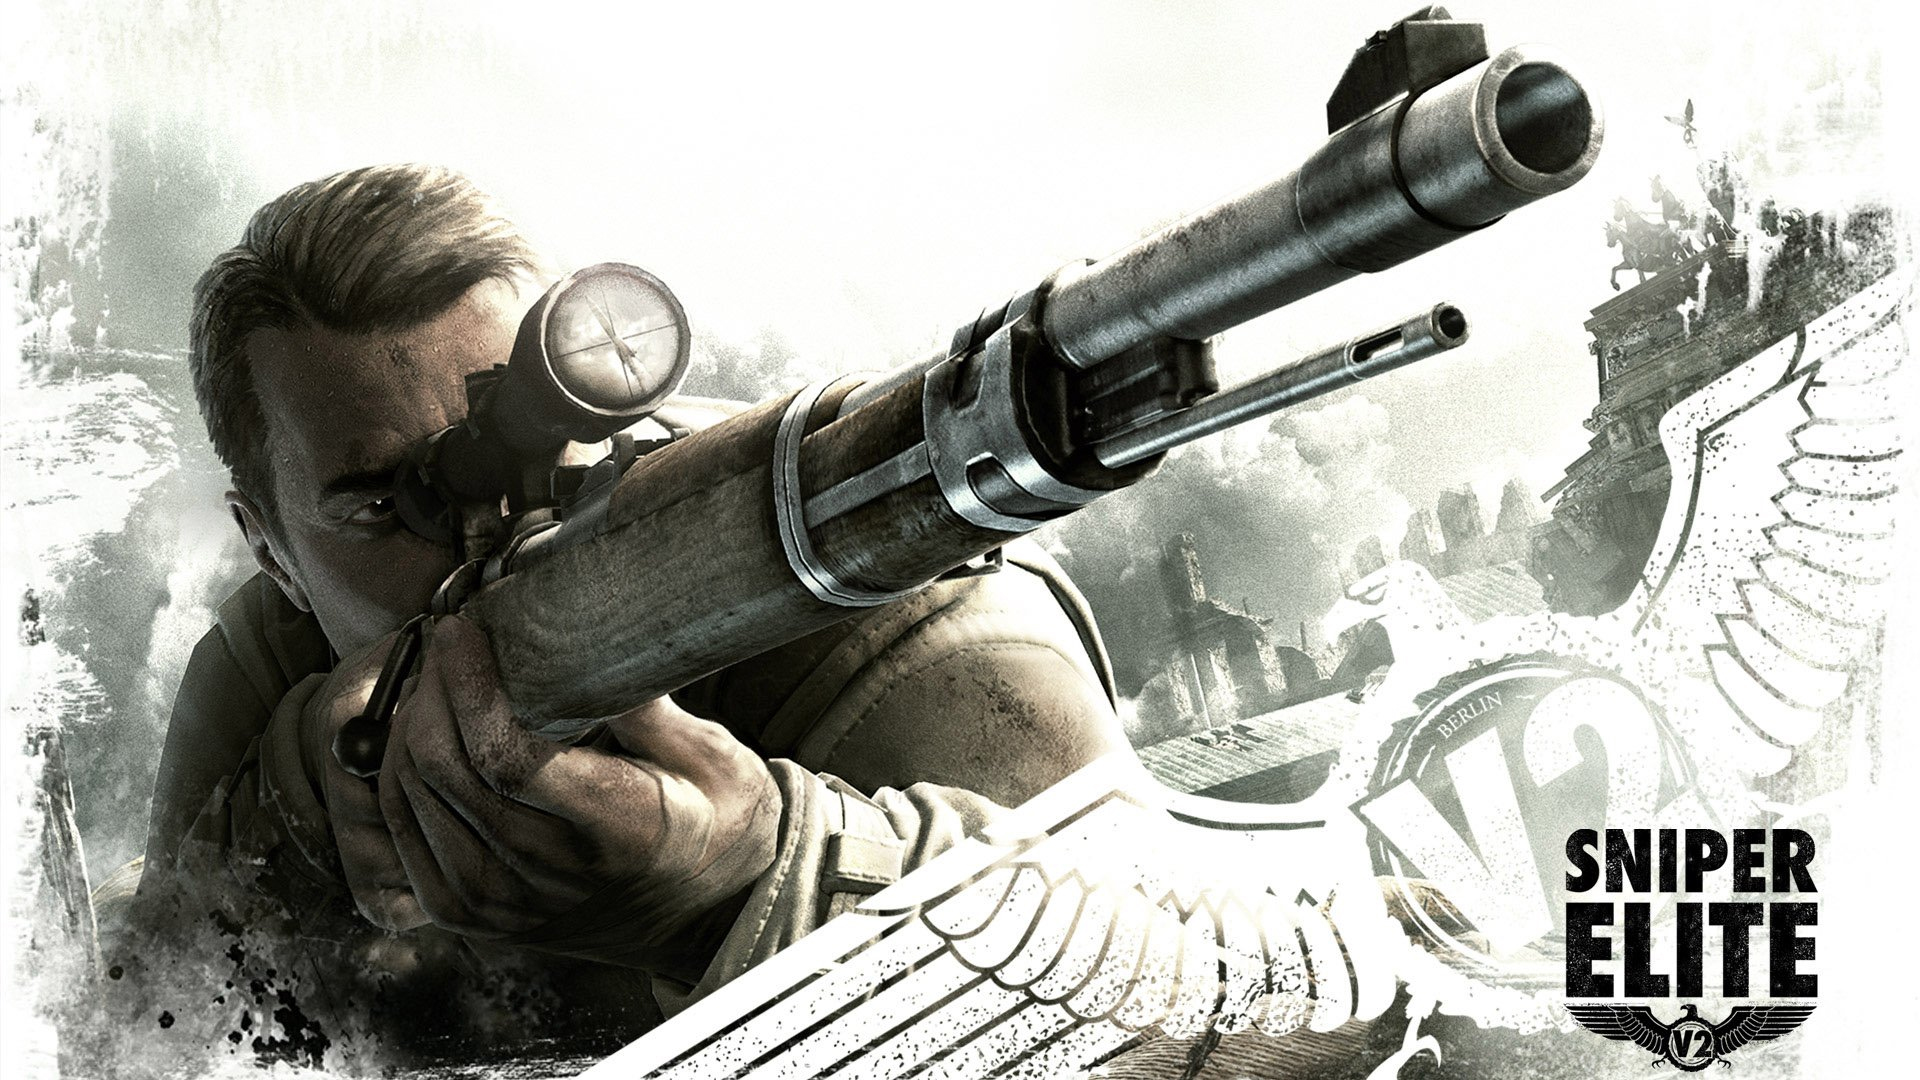 Sniper Elite Wallpapers HD Wallpapers 1920x1080